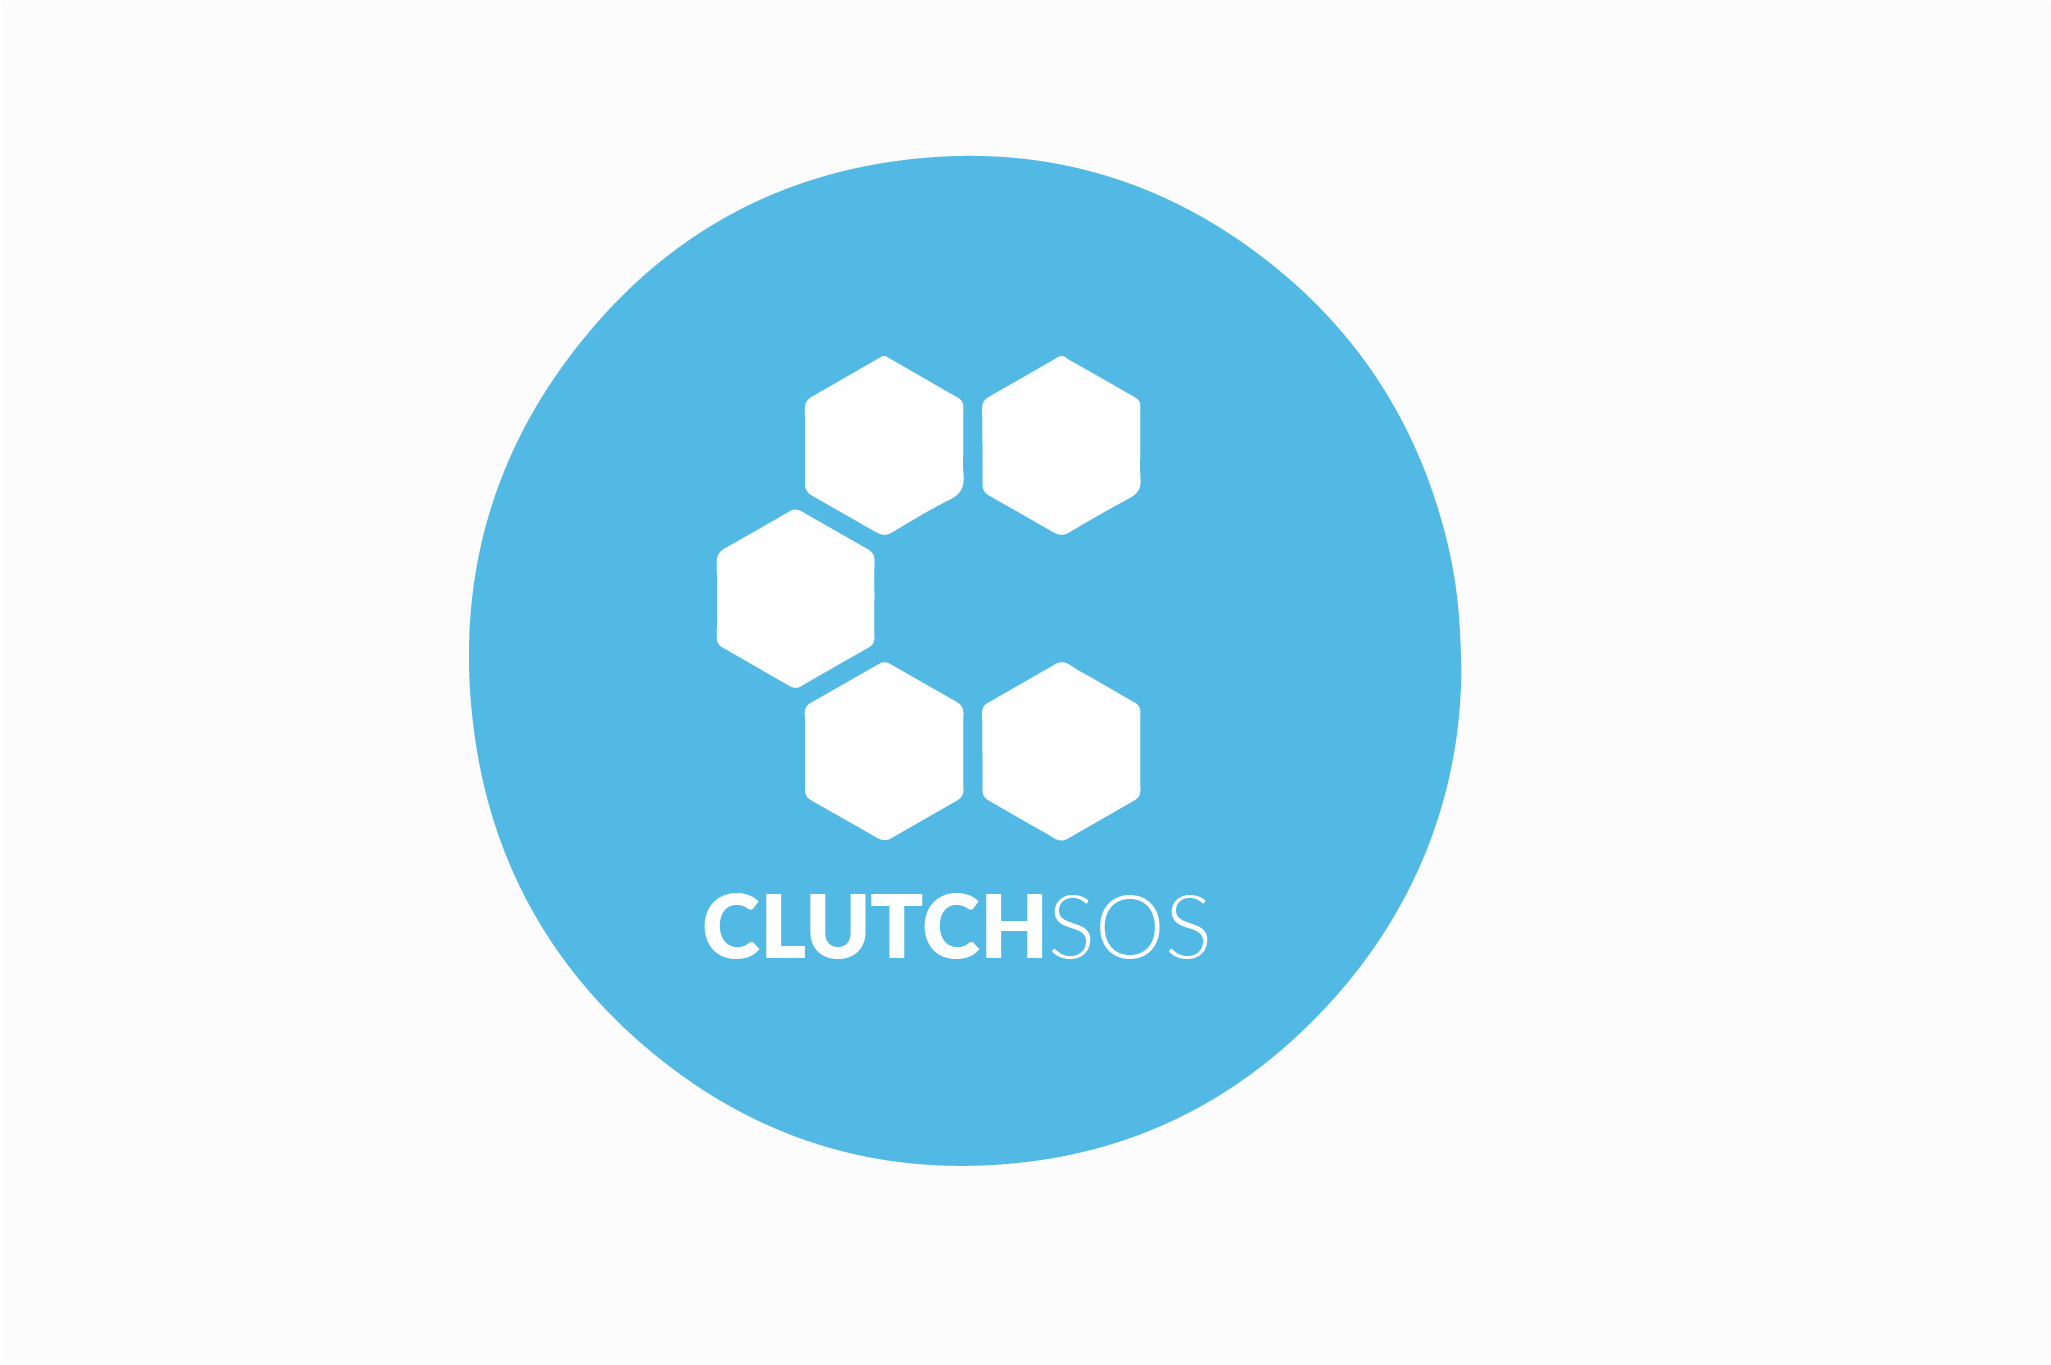 Clutch SOS    A safety tech startup providing VIP Assurance, that's Virtual witnesses, Intervention by those witnesses, and Proof of your situation in the session via audio recording.